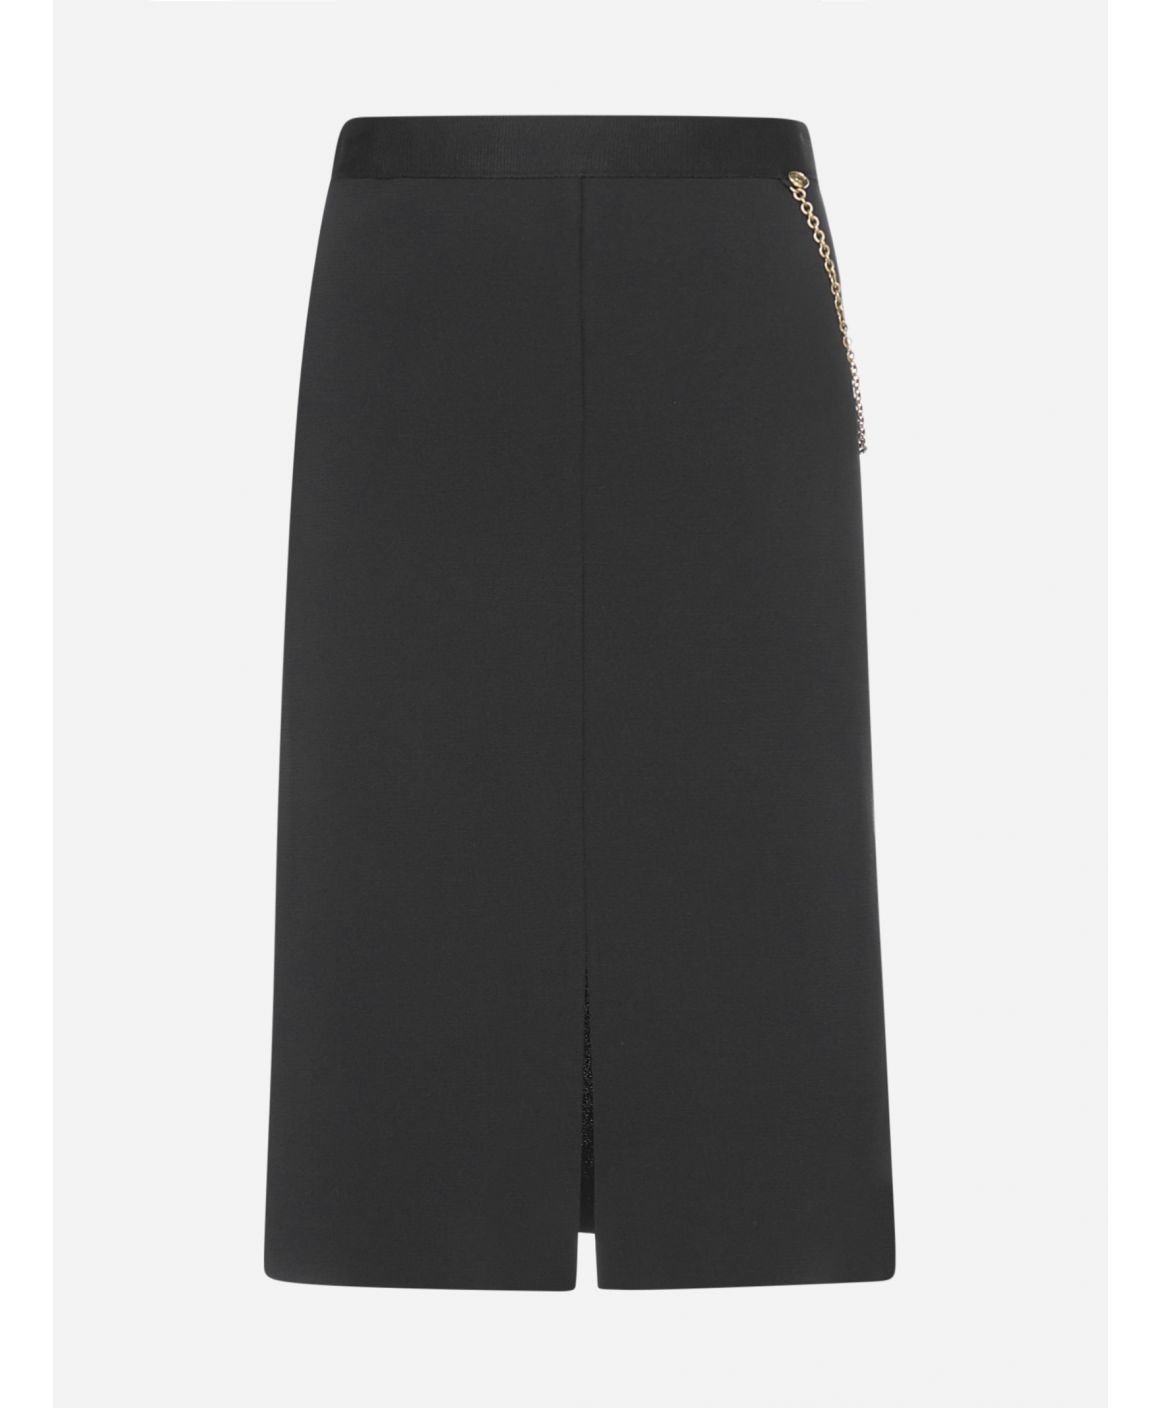 Chain-detail stretch knit skirt